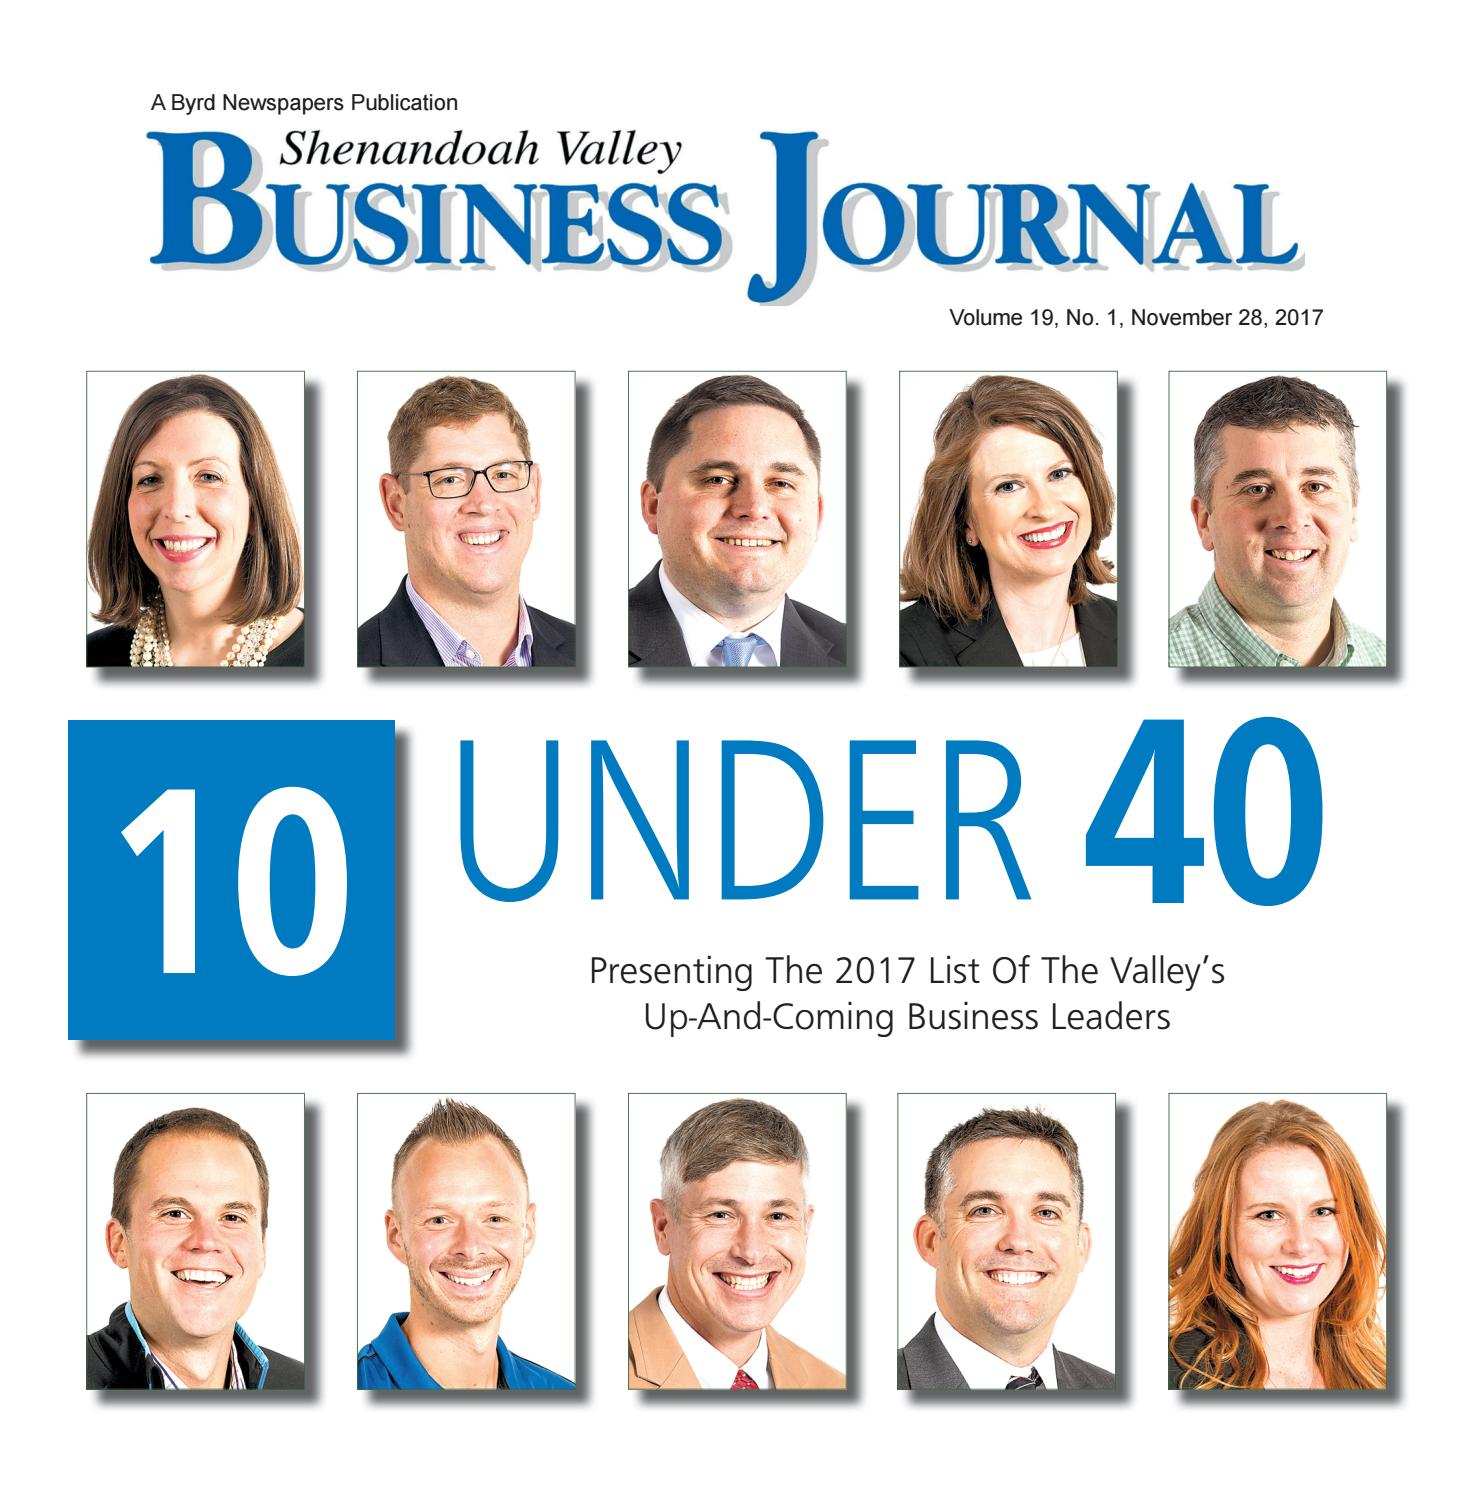 Shenandoah Valley Business Journal - May 2016 by Daily